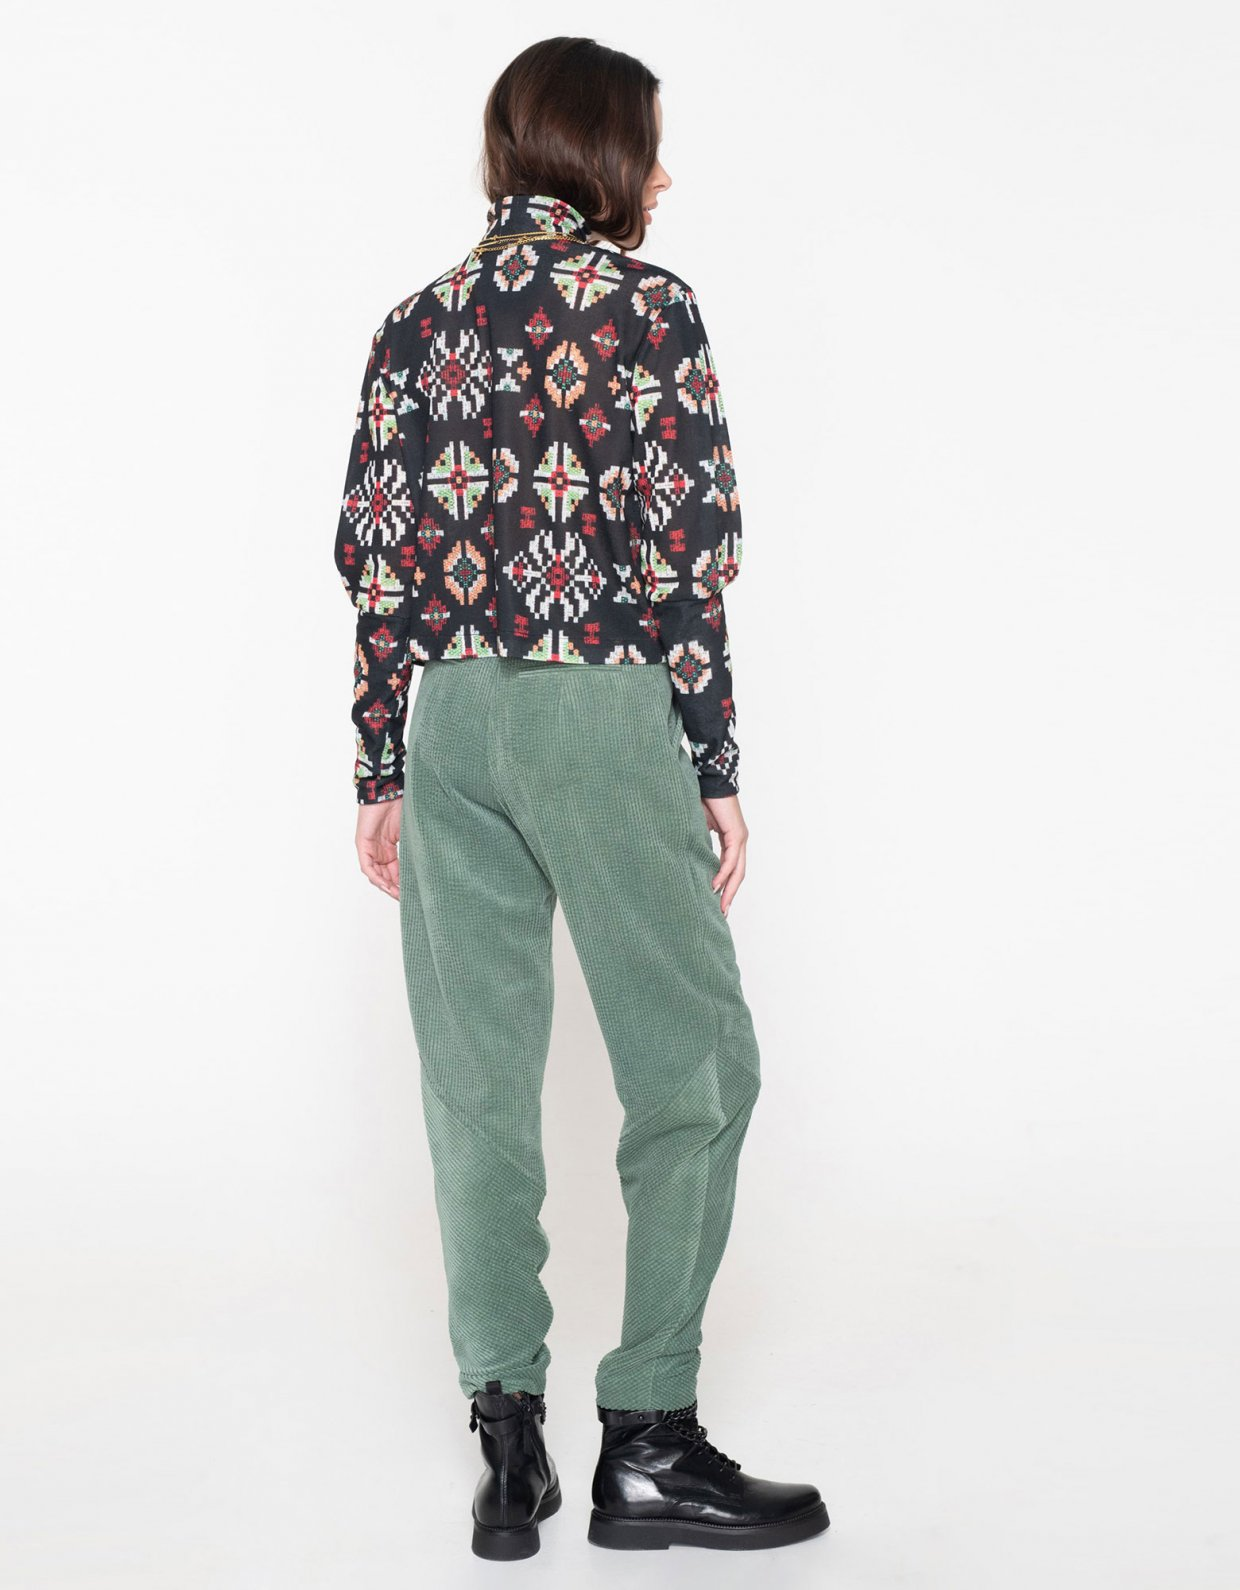 Nadia Rapti Beatles cord pants green